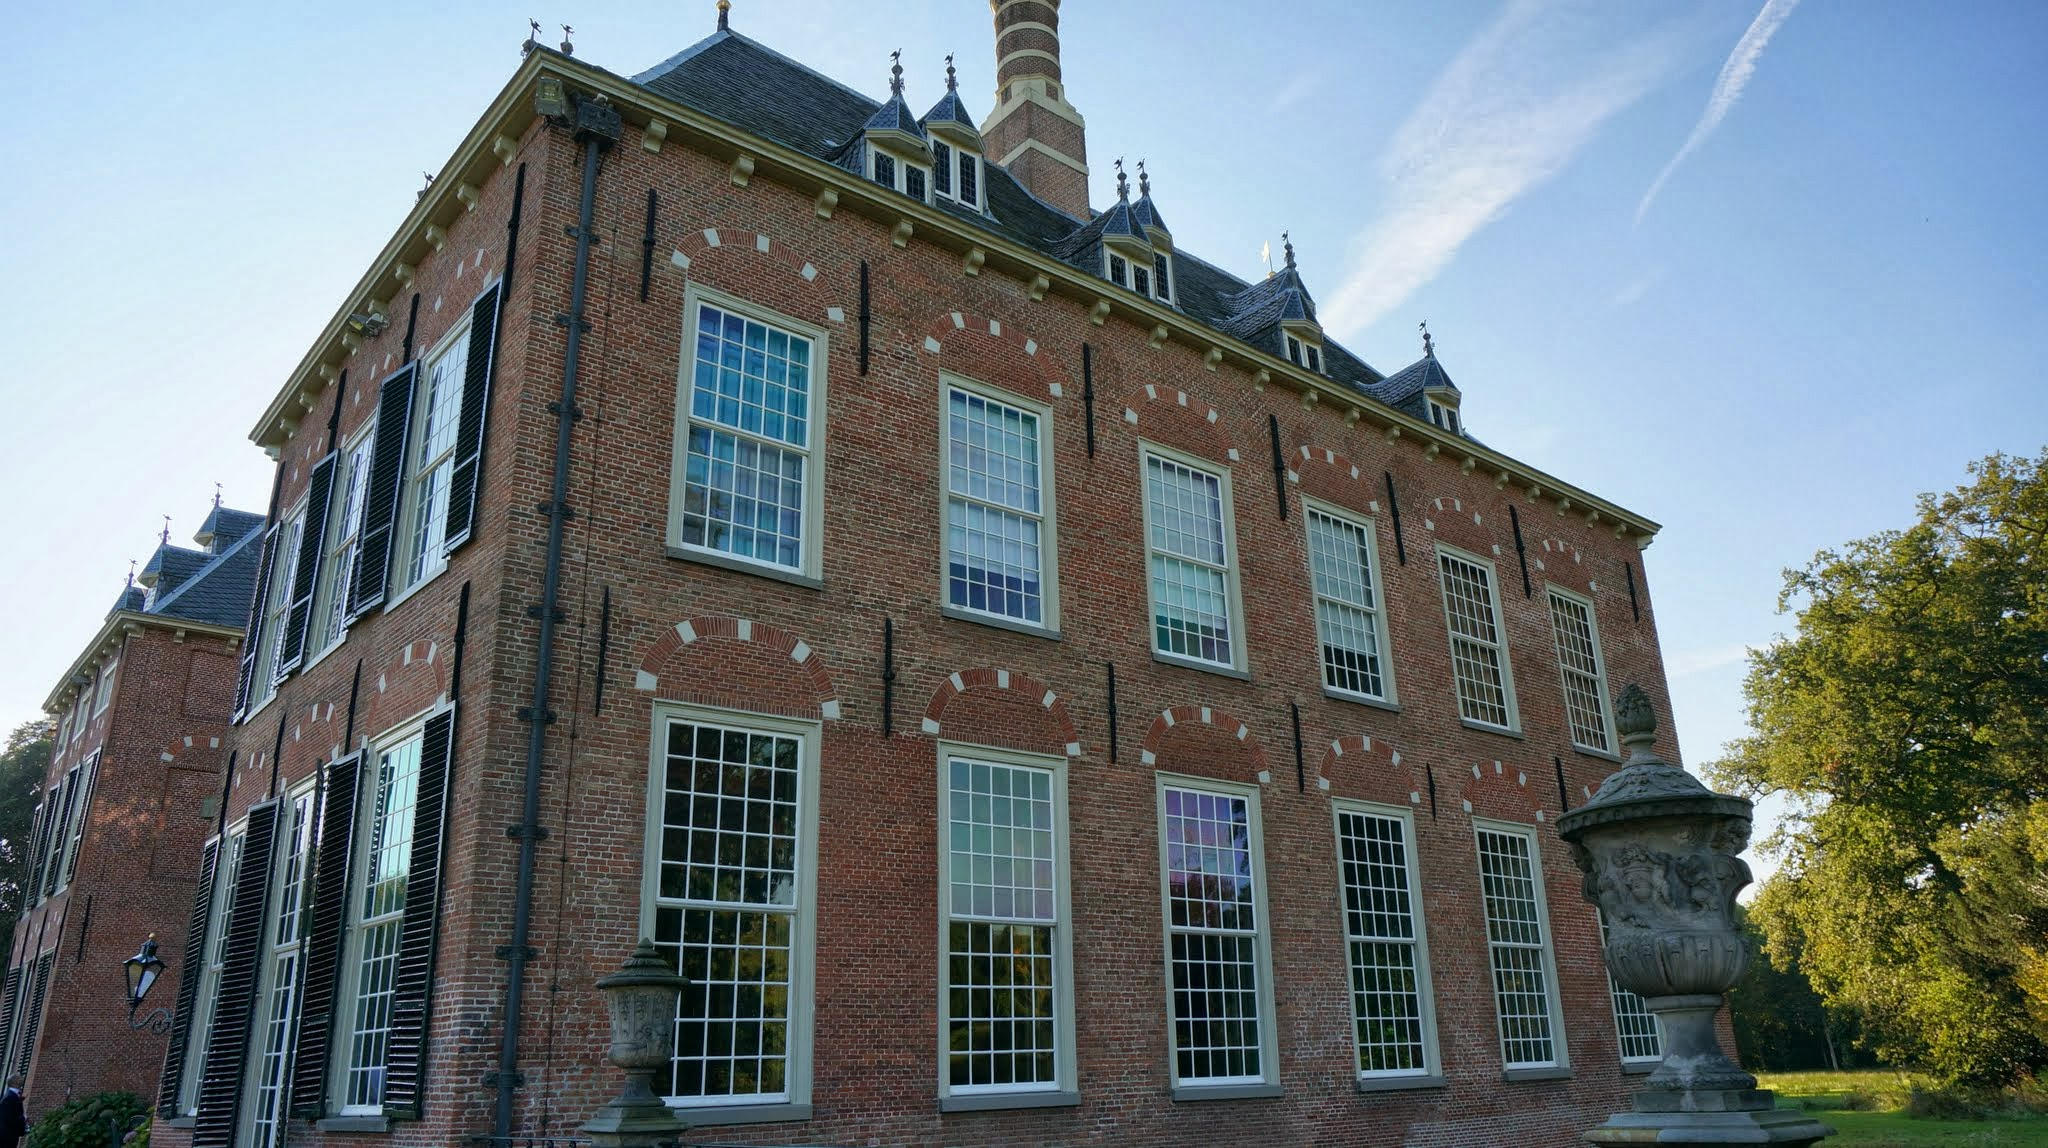 FileVoorschoten Netherlands  panoramio 1jpg  Wikimedia Commons